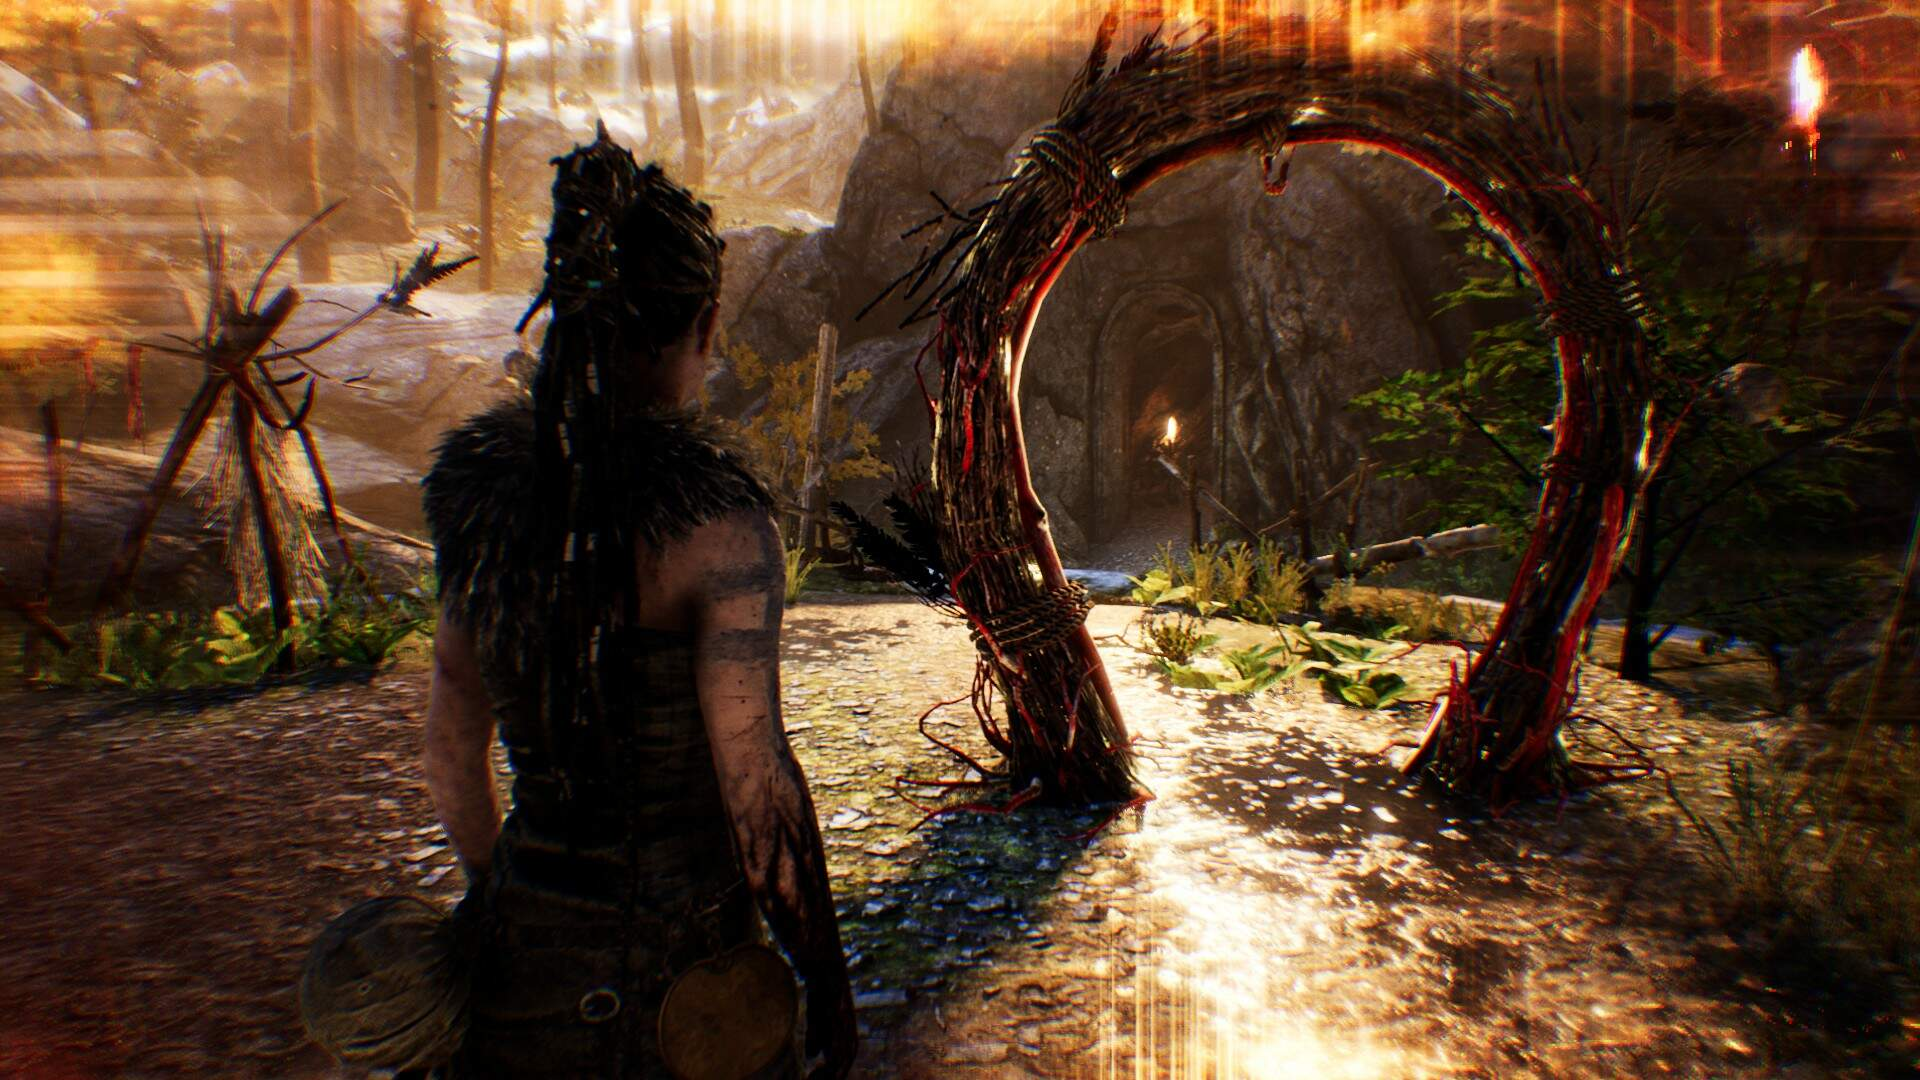 Hellblade: Senua's Sacrifice Graphics Comparison Shows the Switch Version Holds Up Nicely